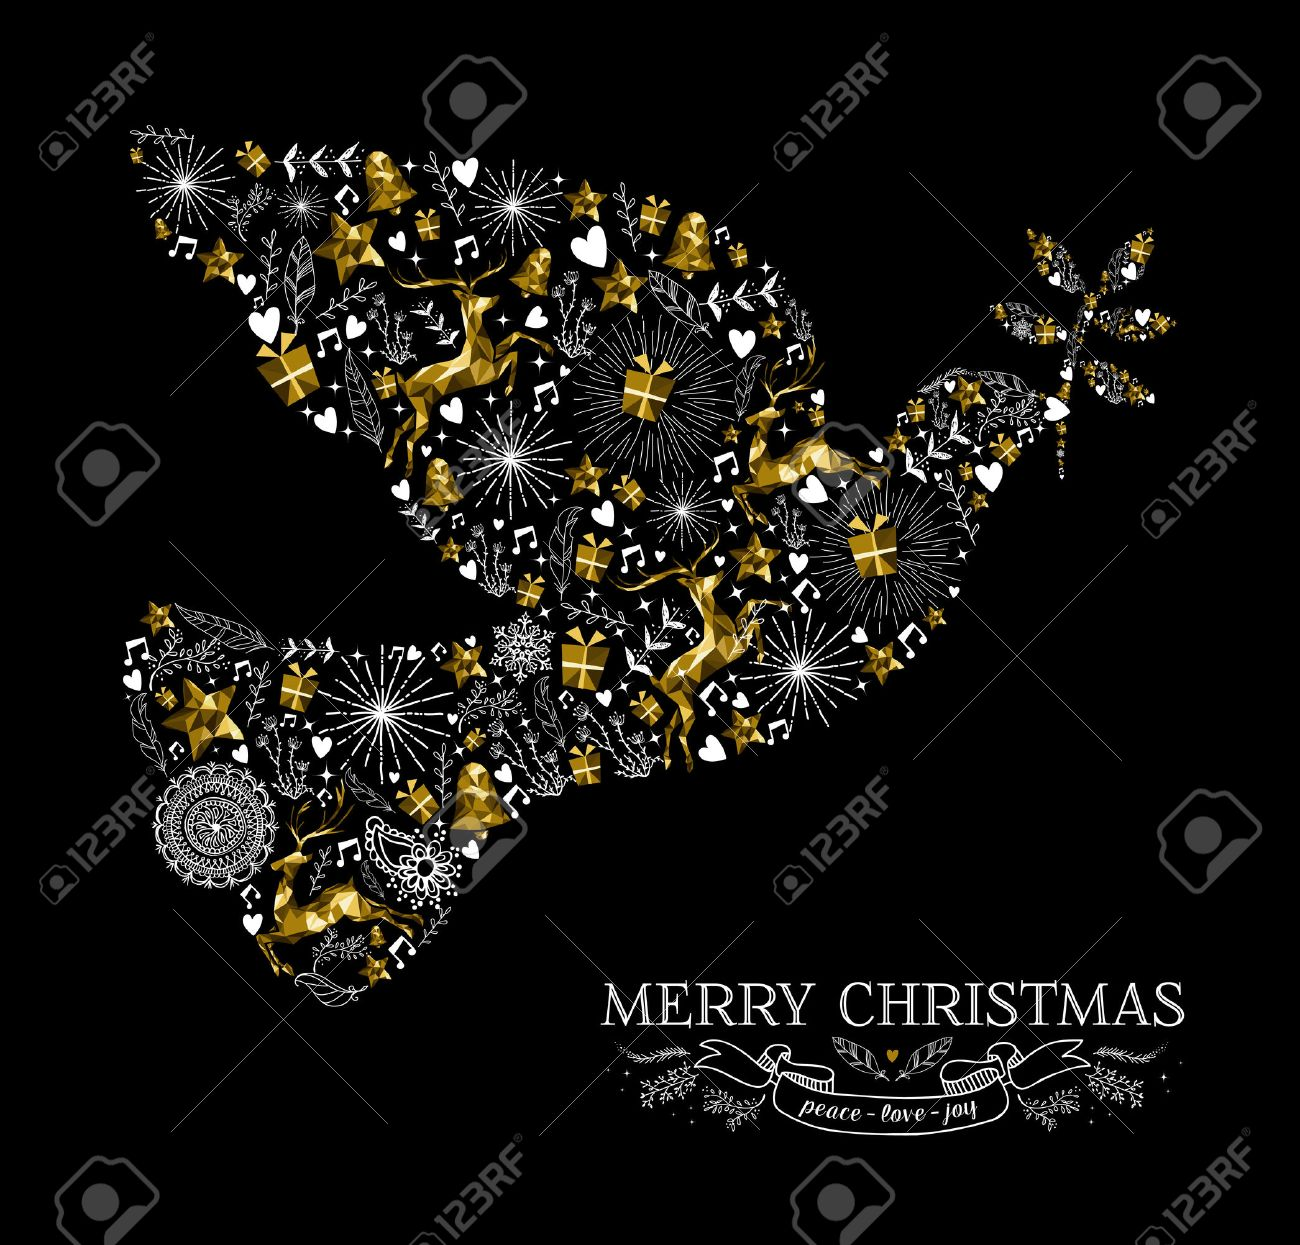 merry christmas happy new year greeting card design holiday elements and reindeer in gold low